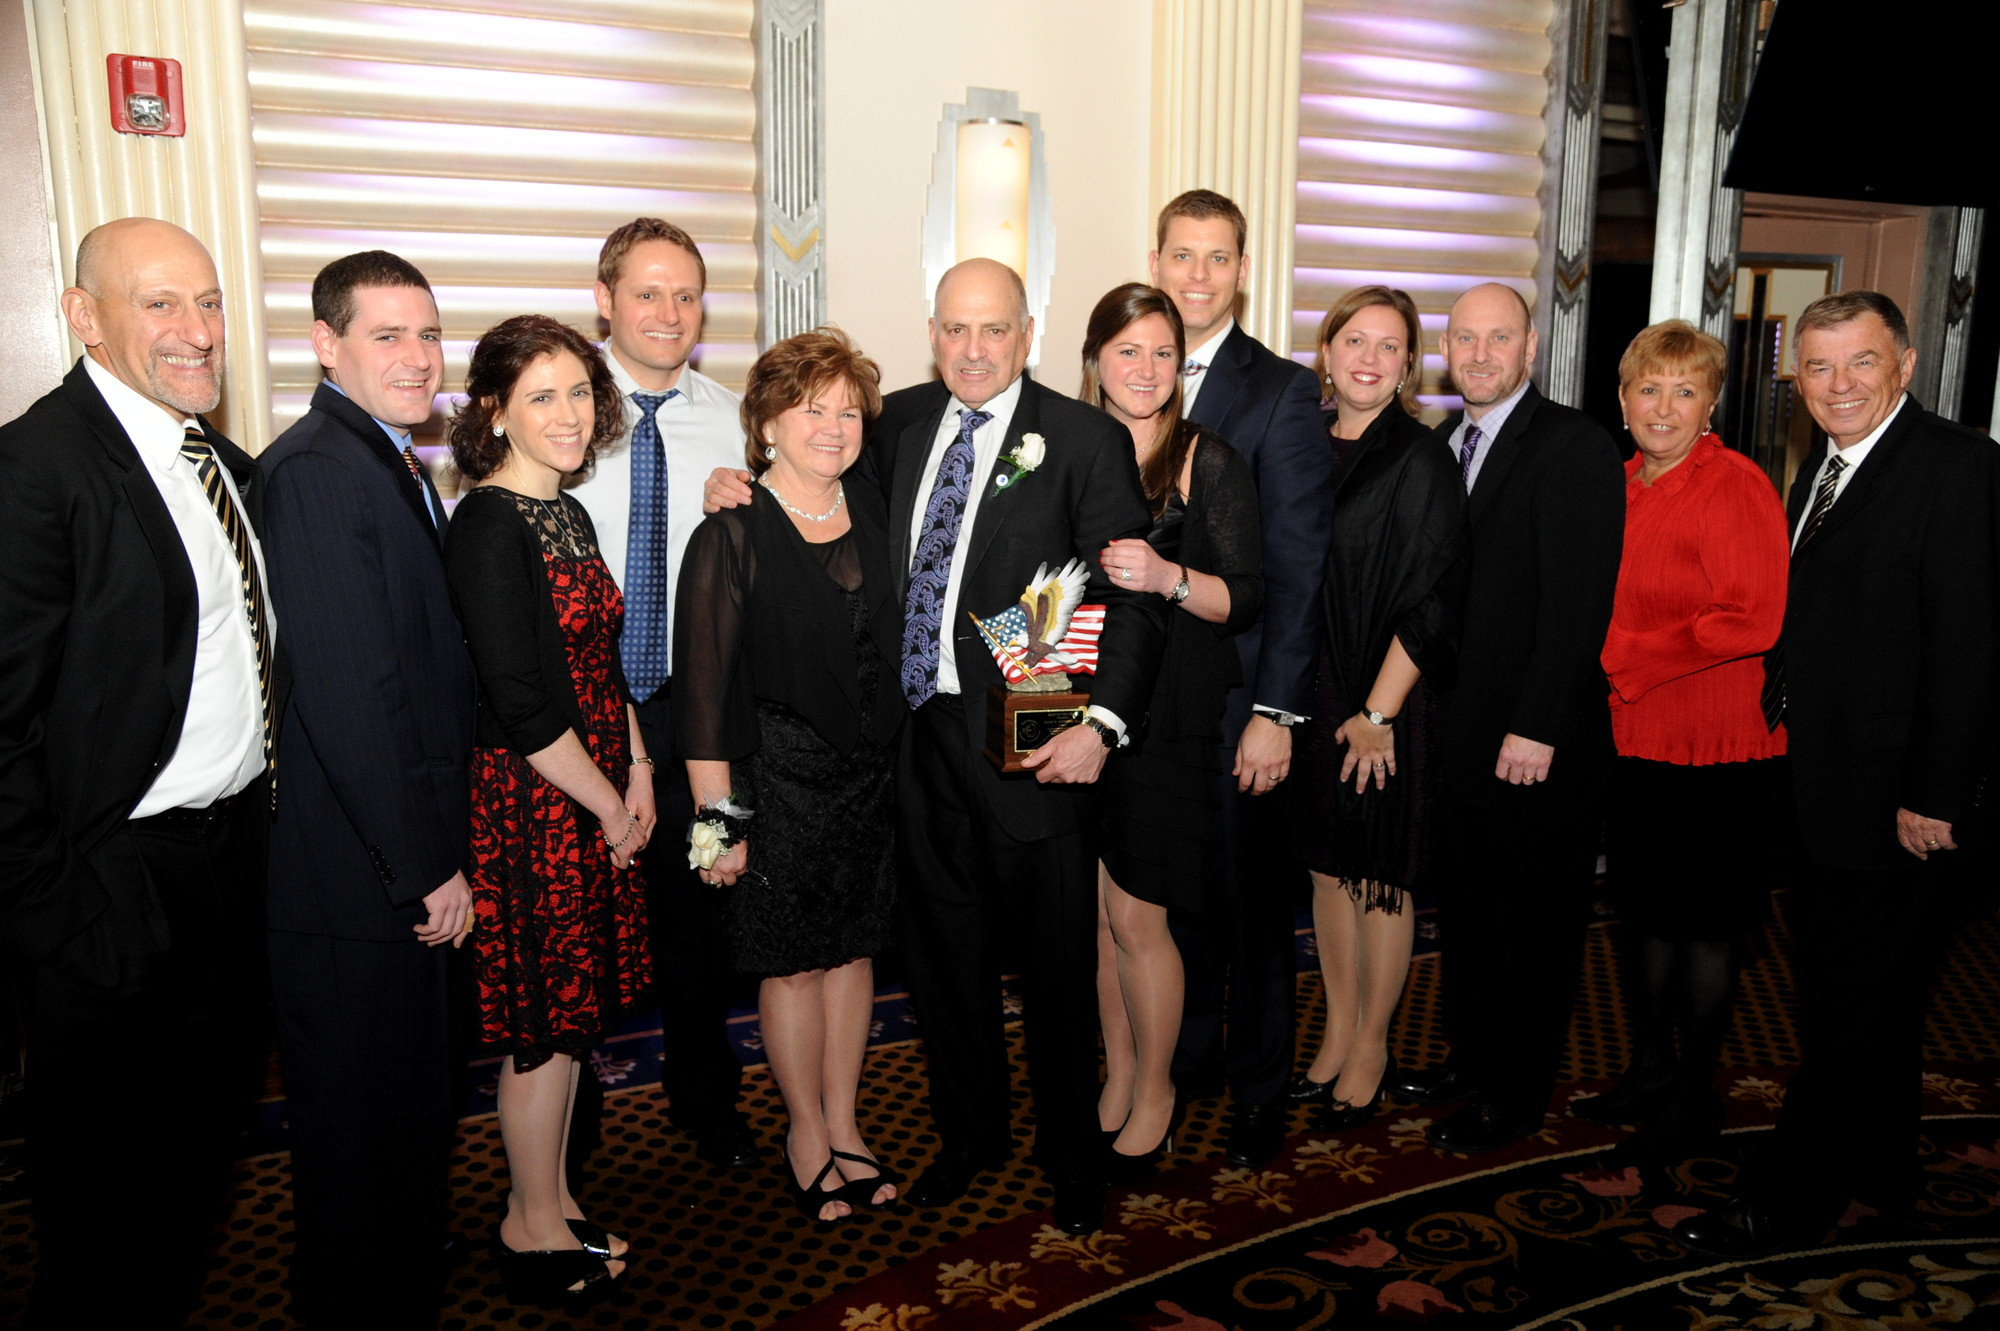 Alan Hodish, sixth from left, was honored as Man of the Year. He was joined to his right by his wife, Denise, and the rest of his family and friends.